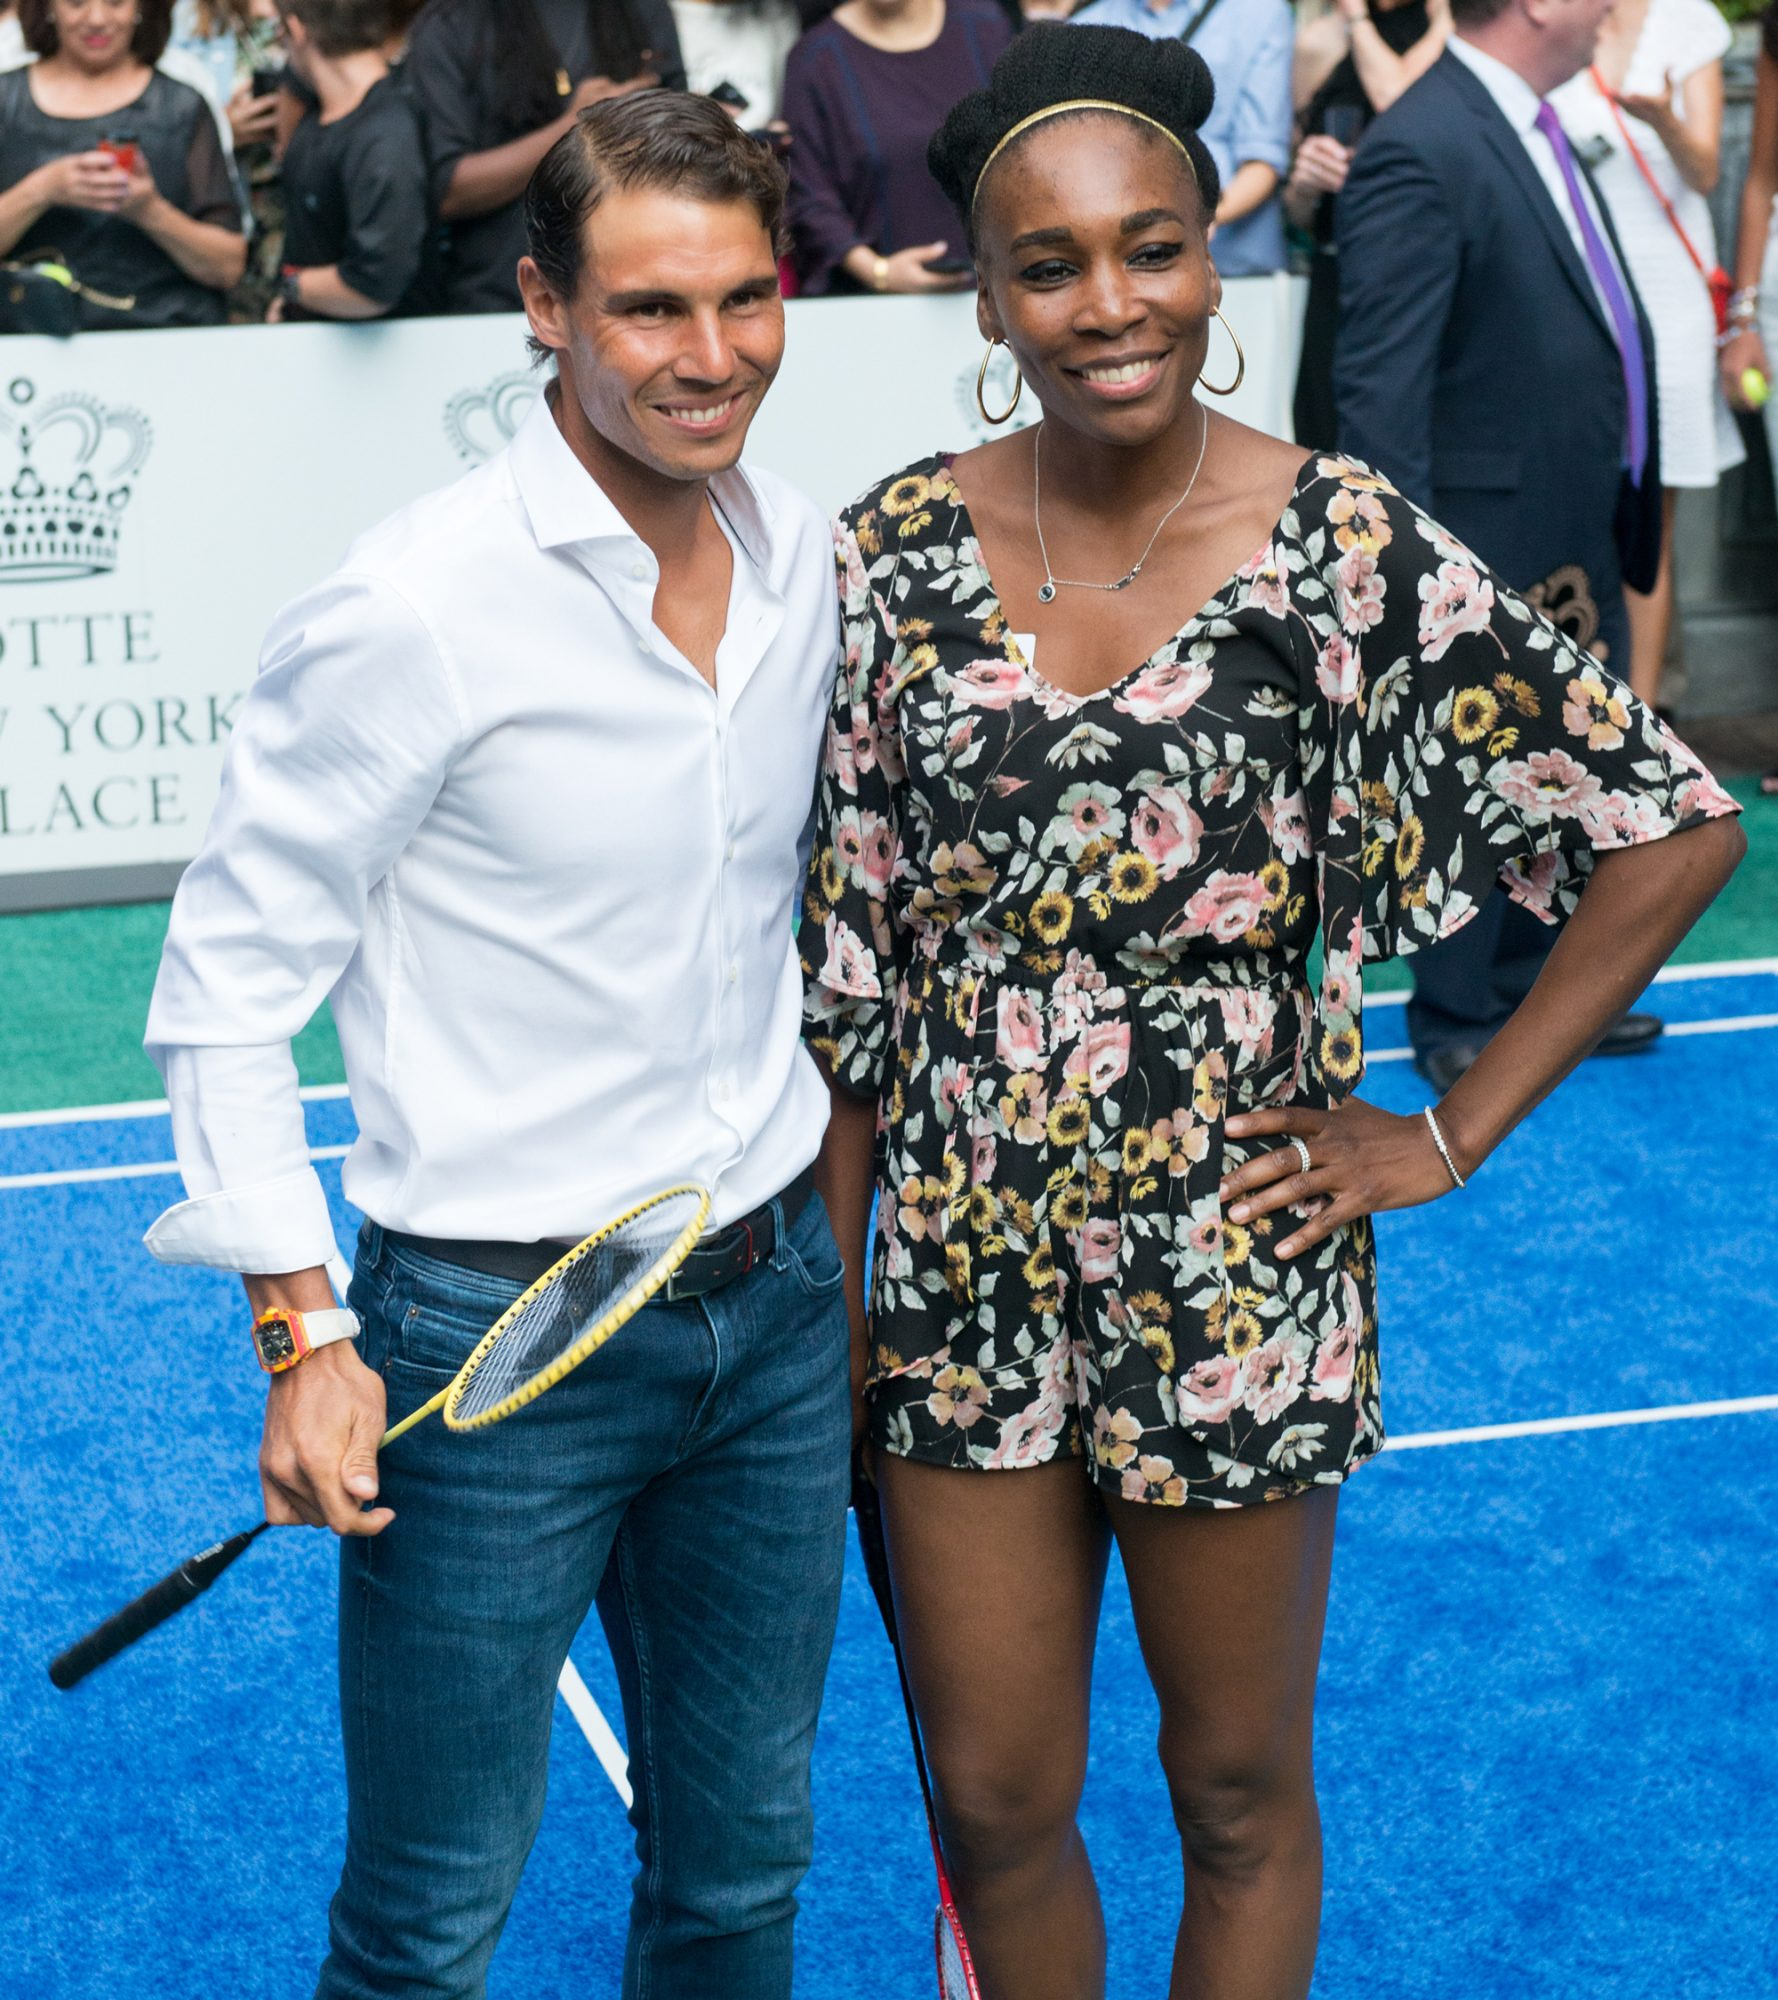 Rafael Nadal and Venus Williams